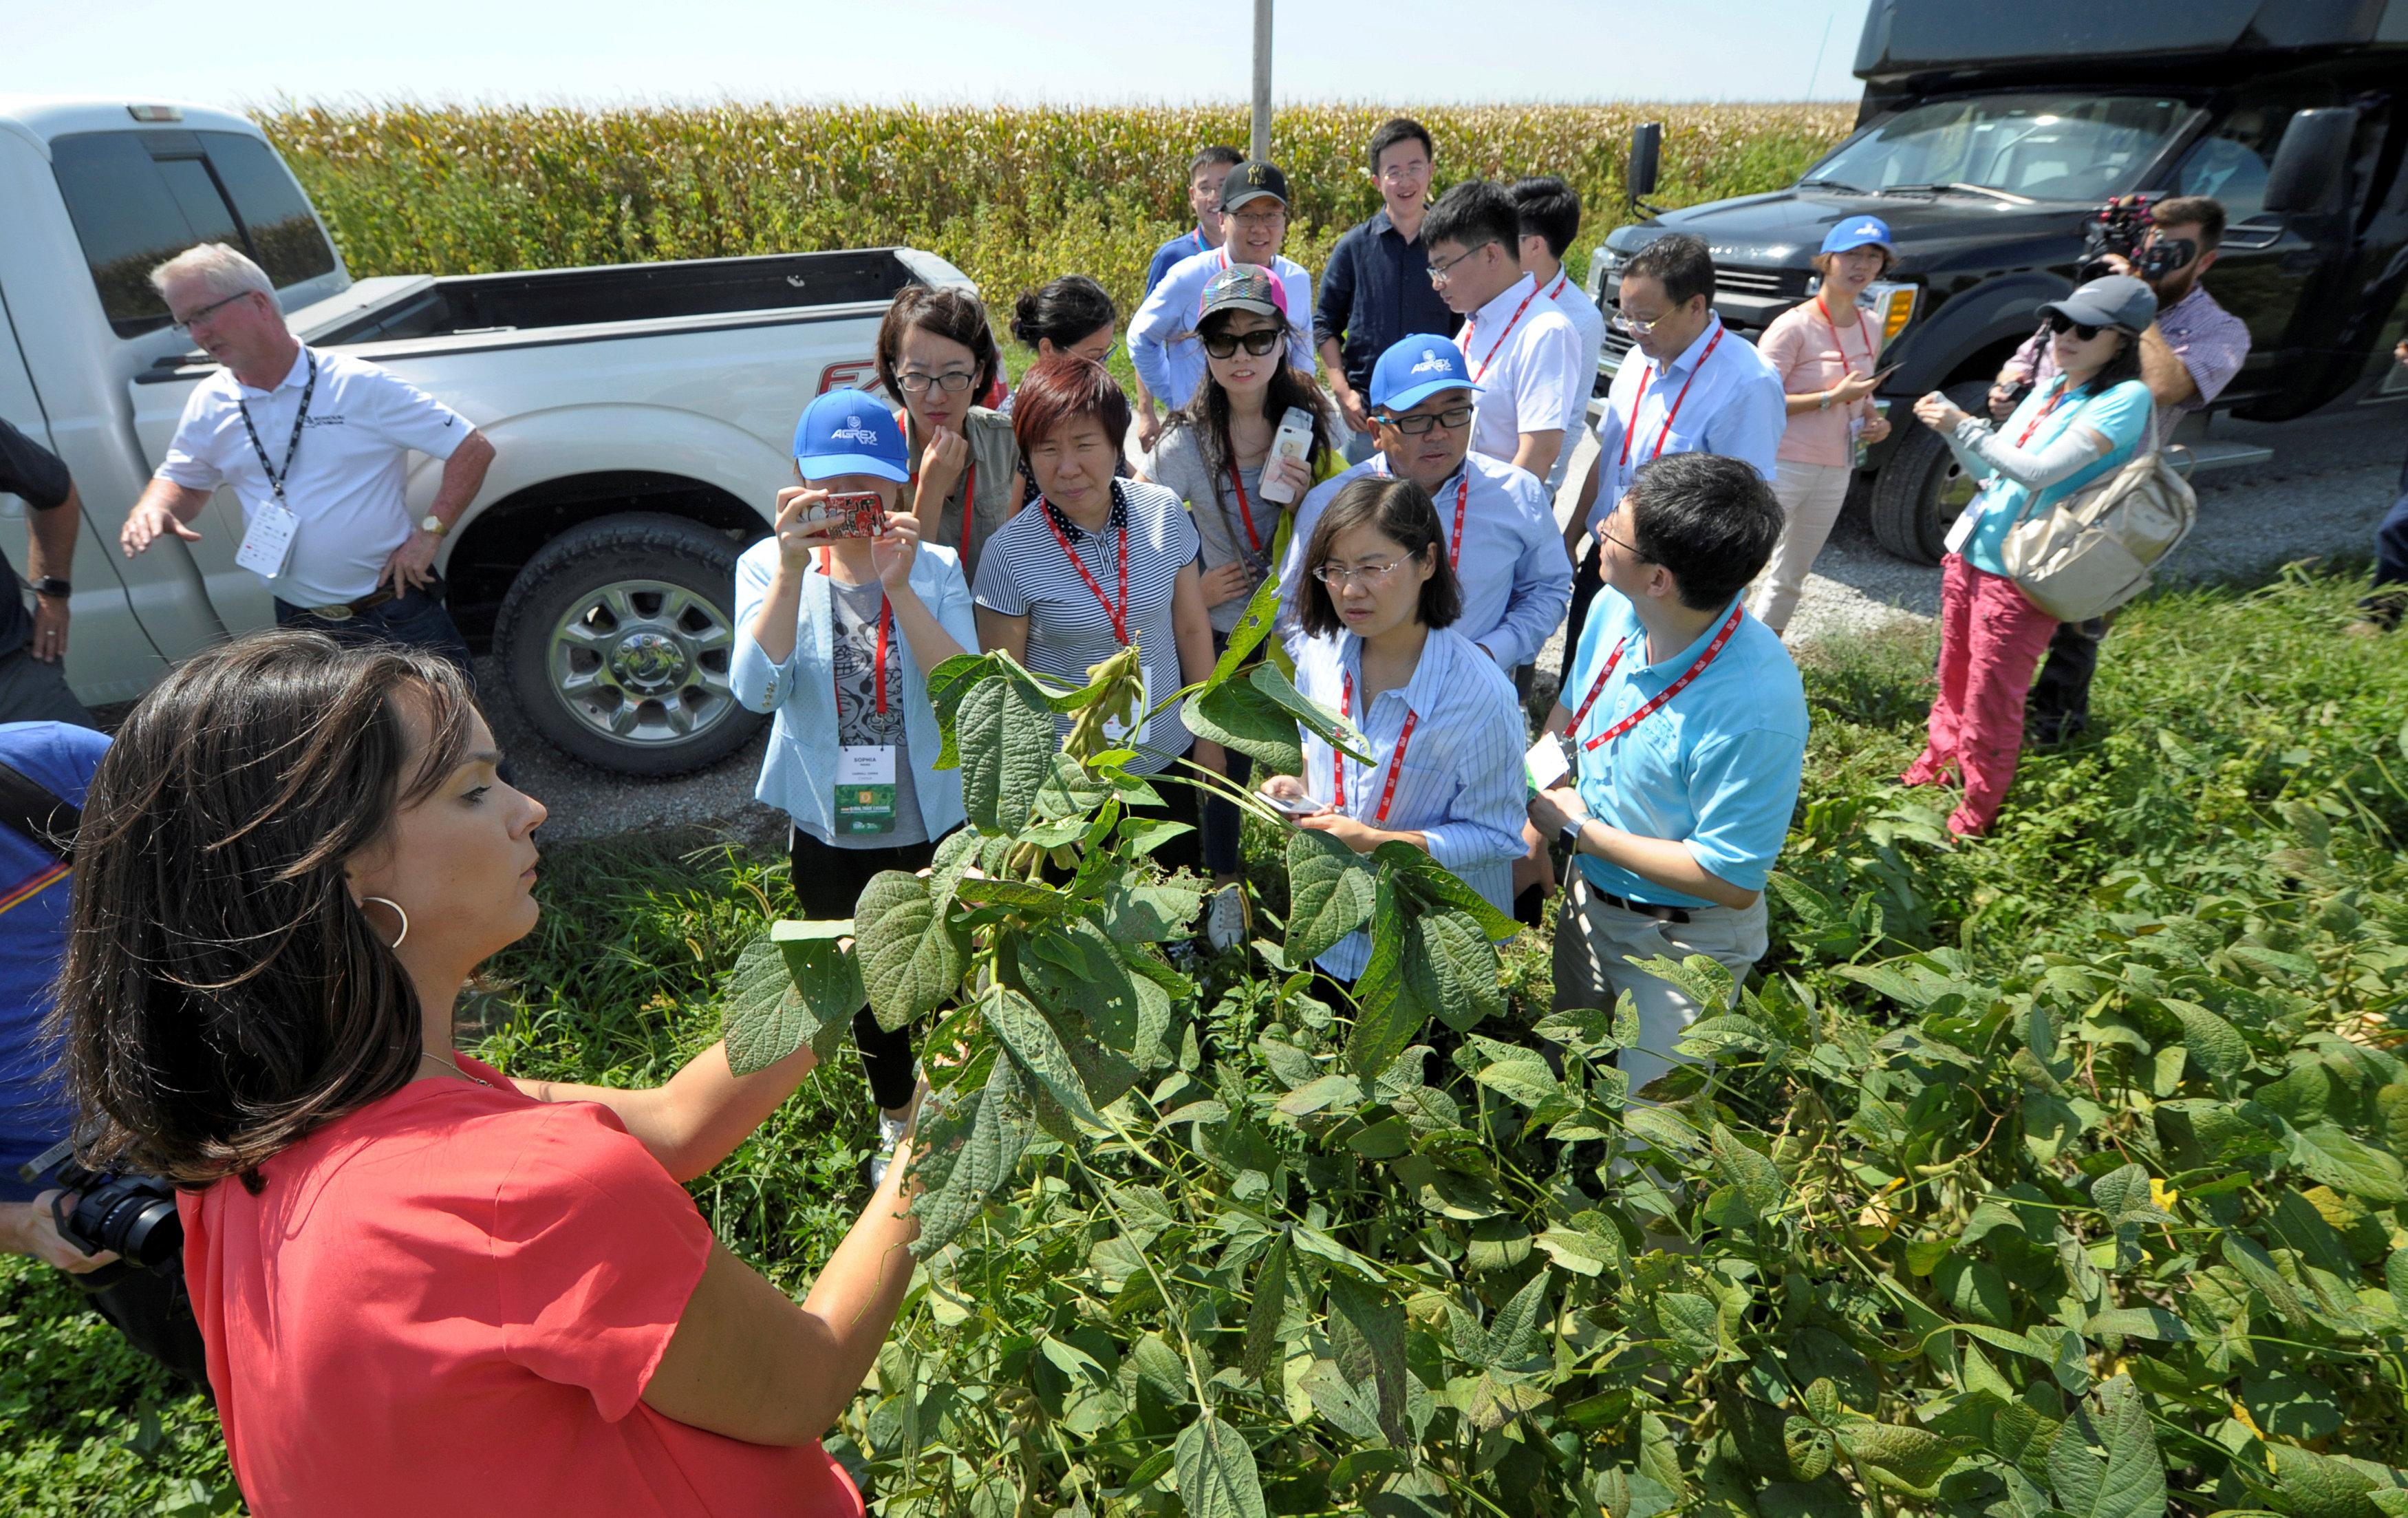 Meagan Kaiser pulled up a soybean plant to show to a Chinese trade delegation during a tour of the Kaiser farm near Norborne, Missouri, U.S., August 28, 2018.  Dave Kaup